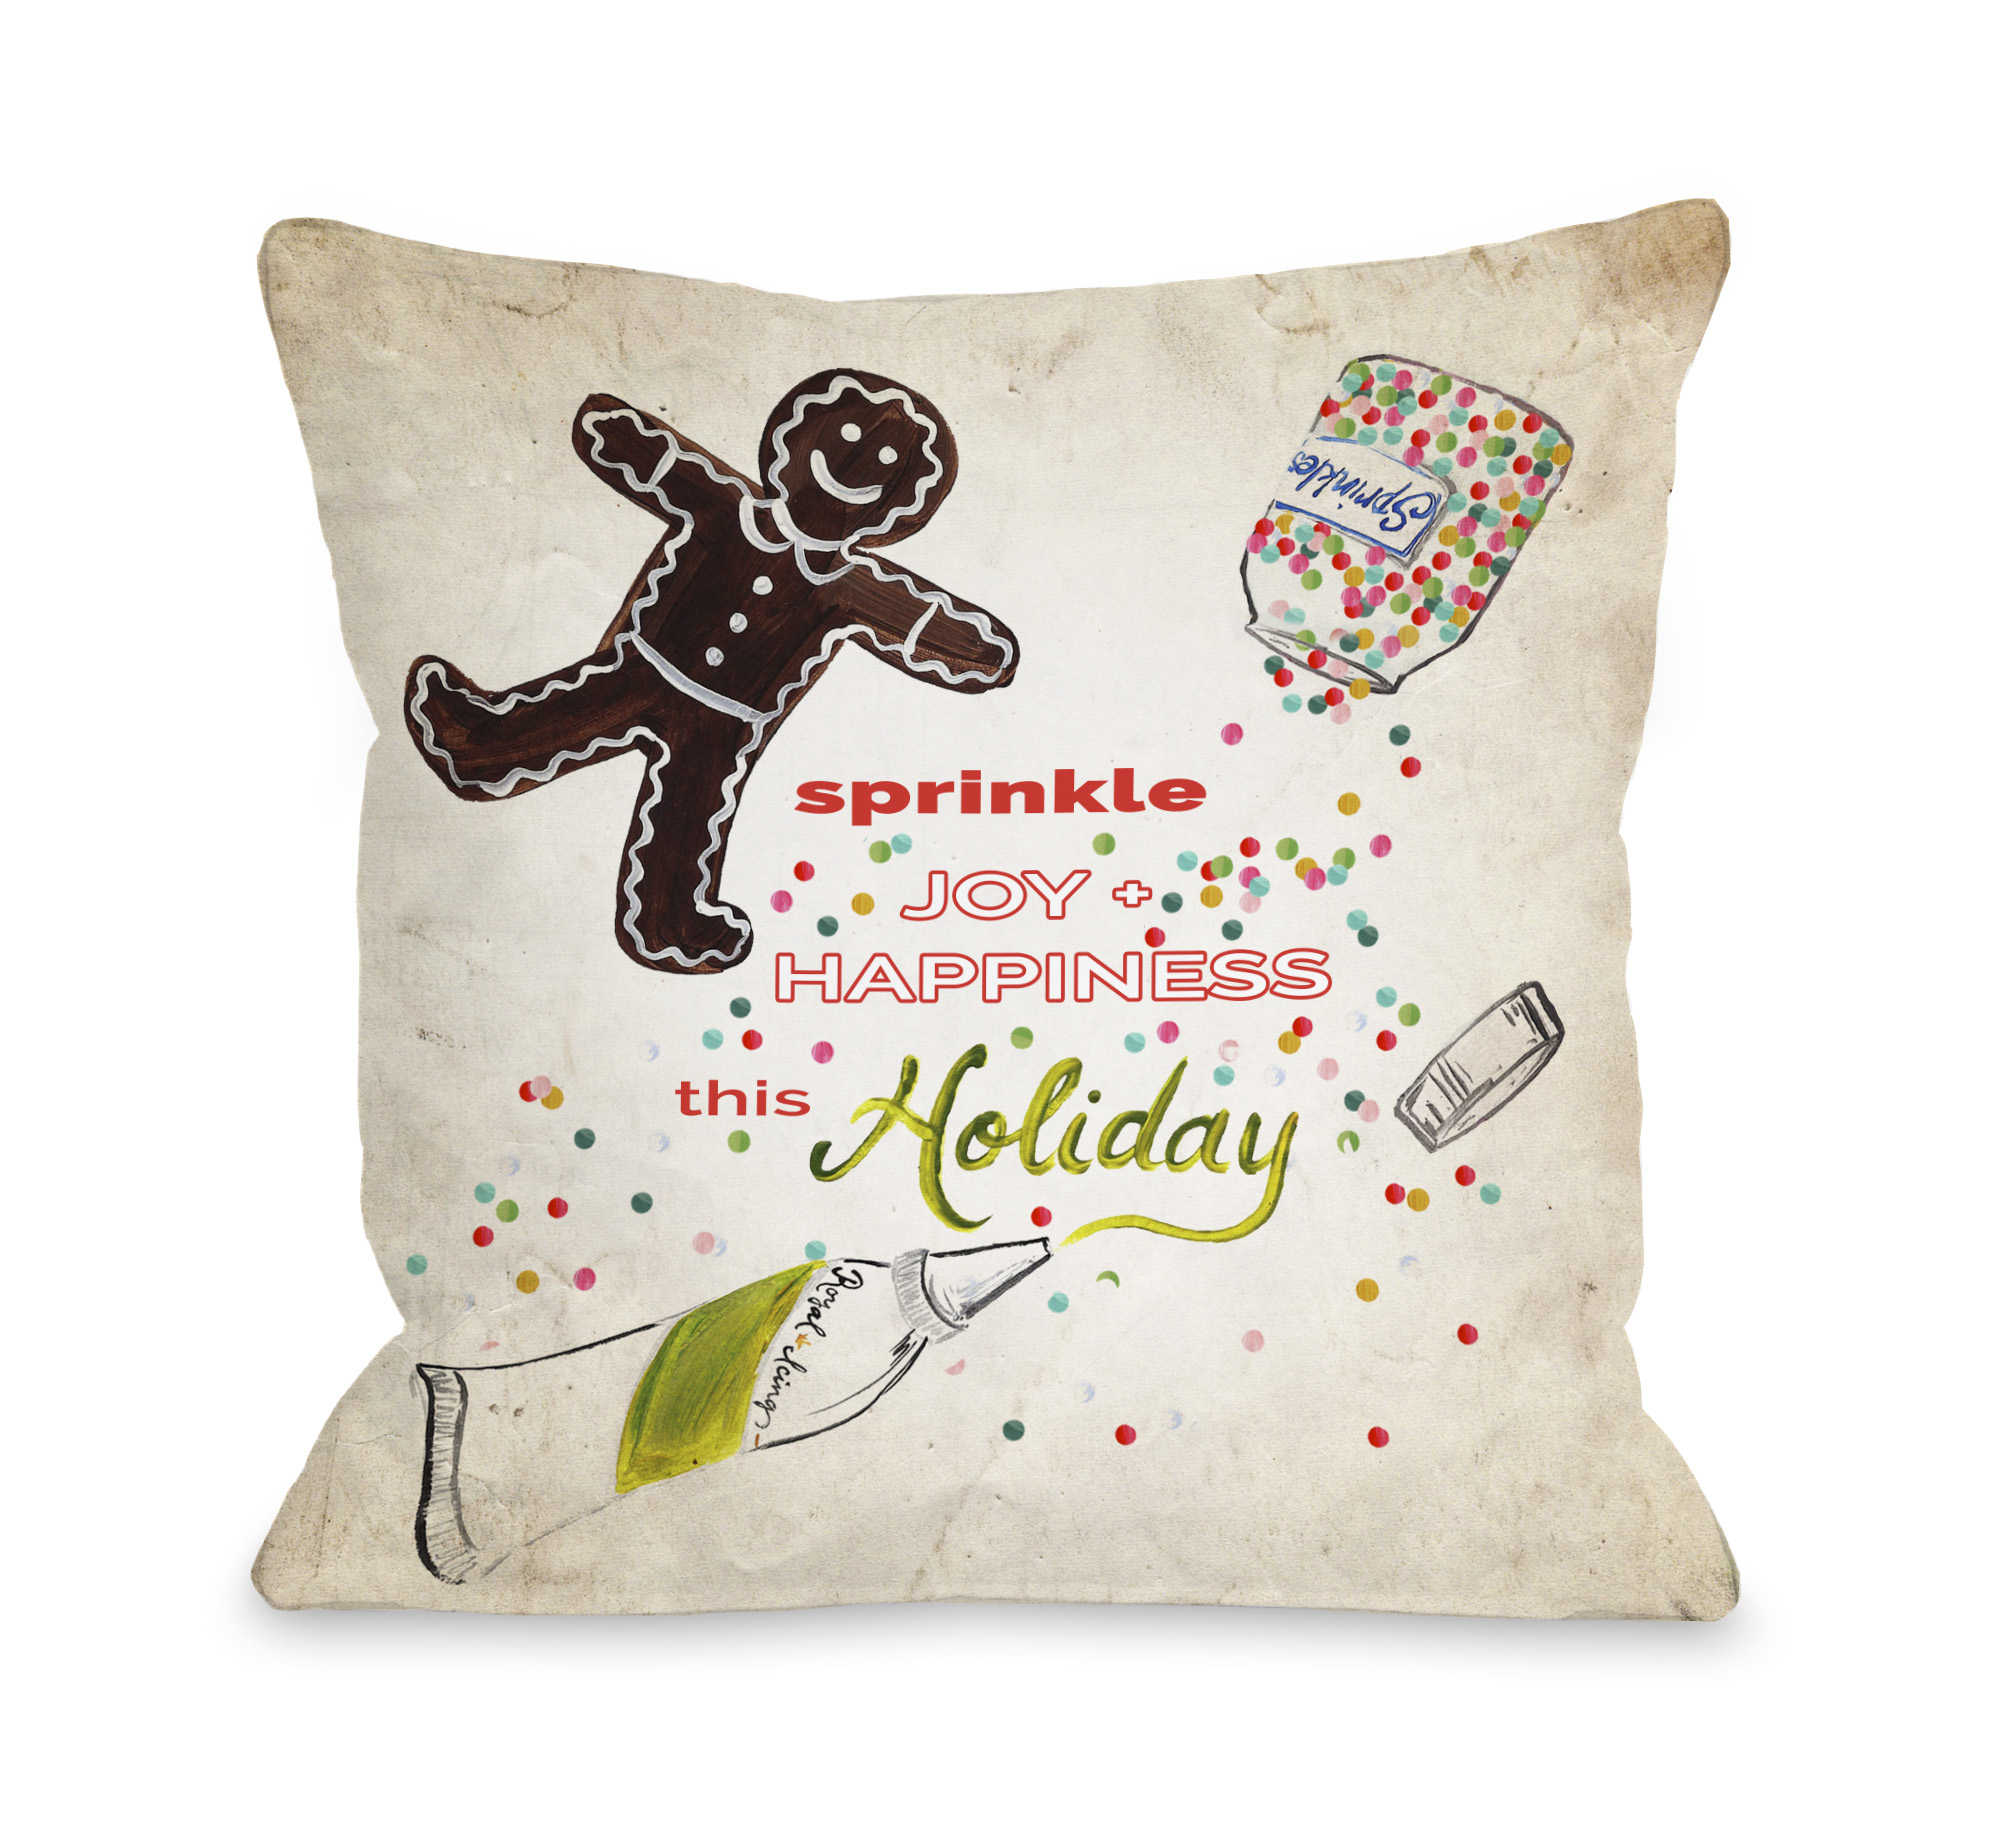 Sprinkle Joy and Happiness - Tan Multi 16x16 Pillow by Timree